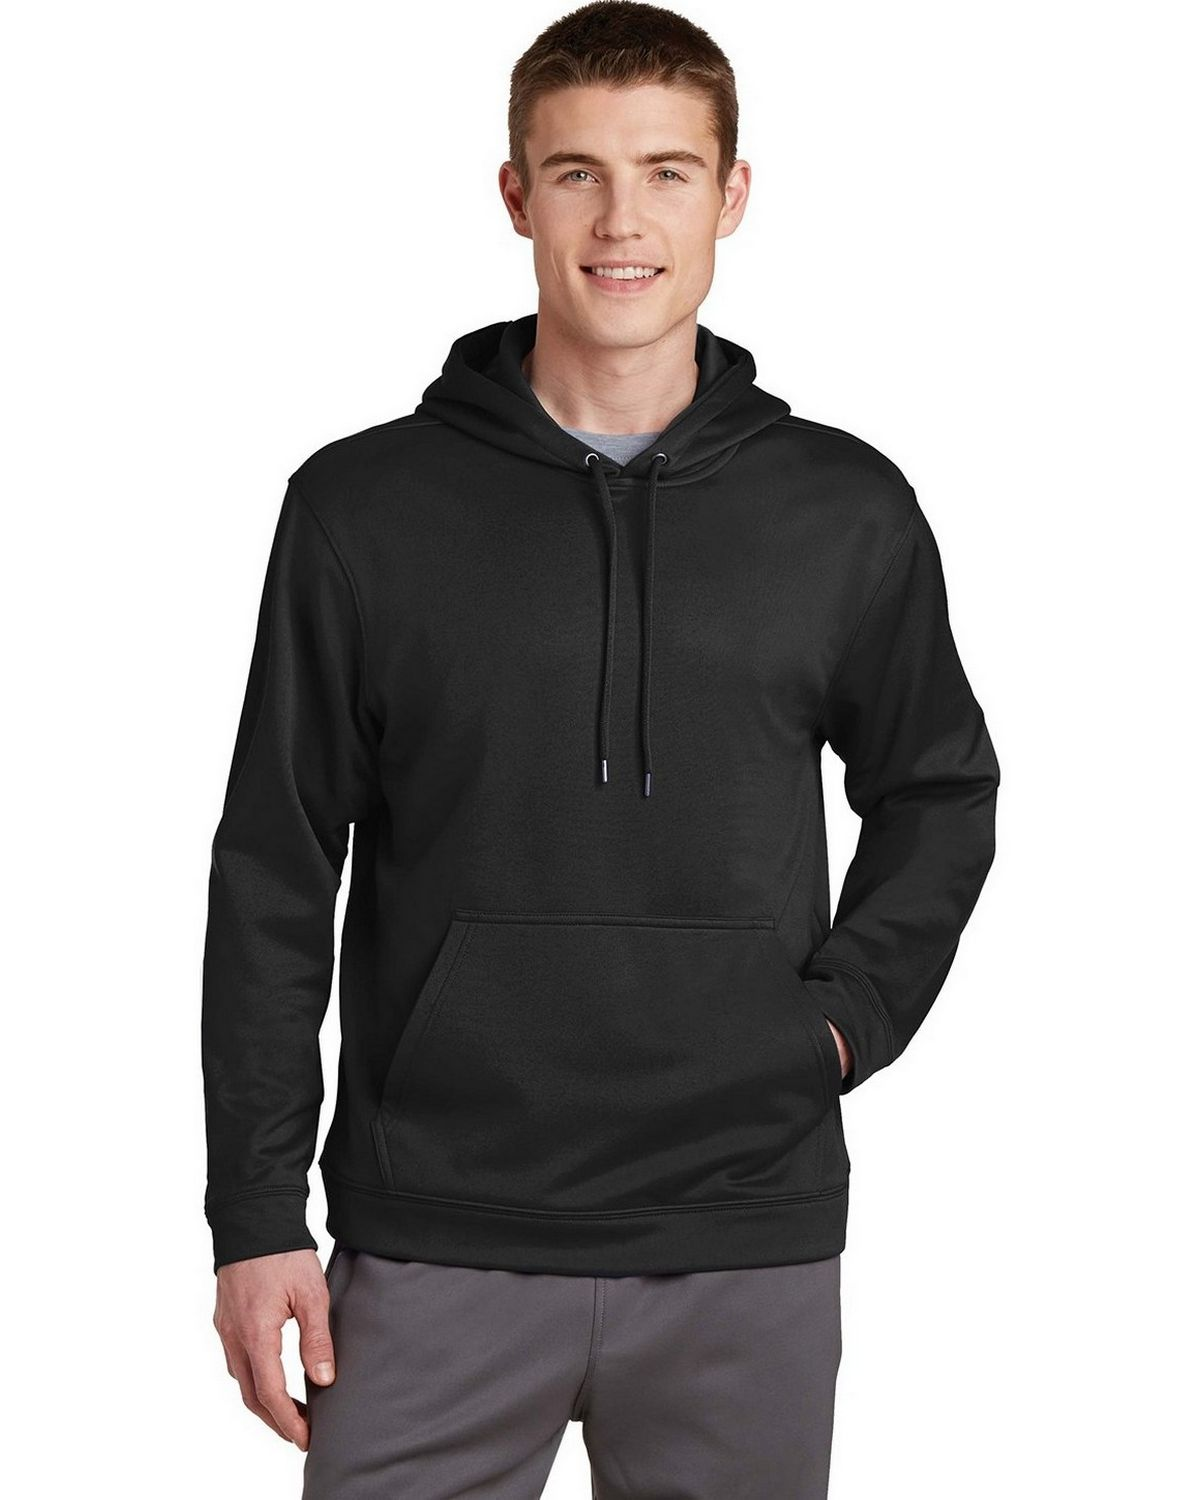 Sport-Tek F244 Sport-Wick Fleece Hooded Pullover - Black - M F244